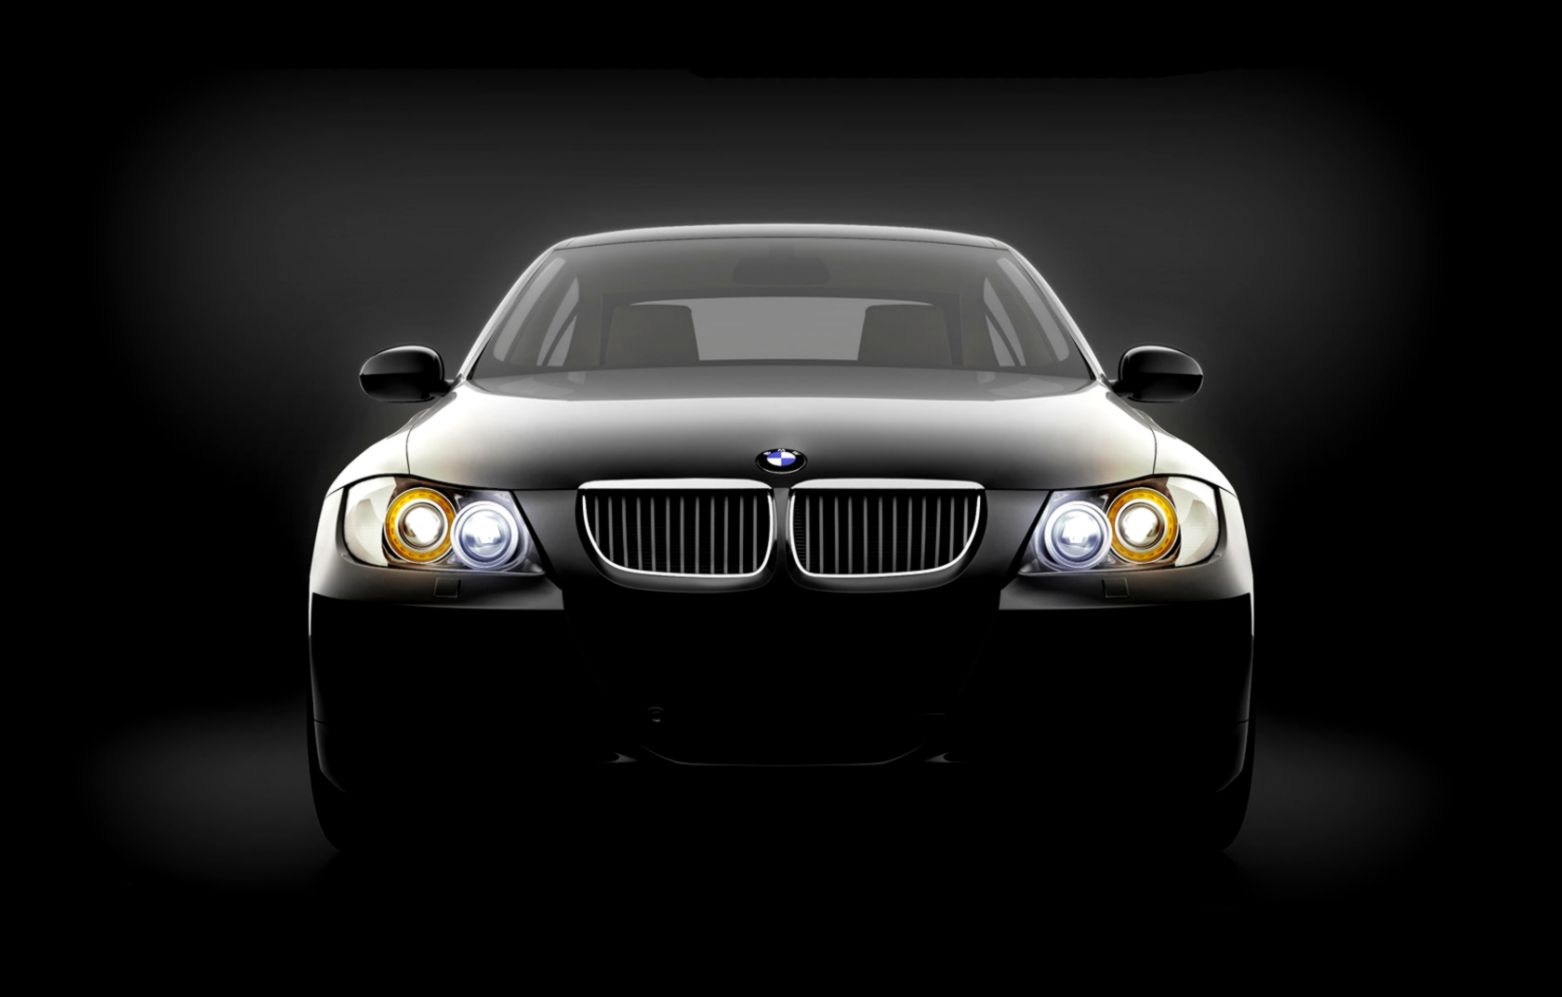 Schomp BMW  Schomp BMWs Guide to Black Friday